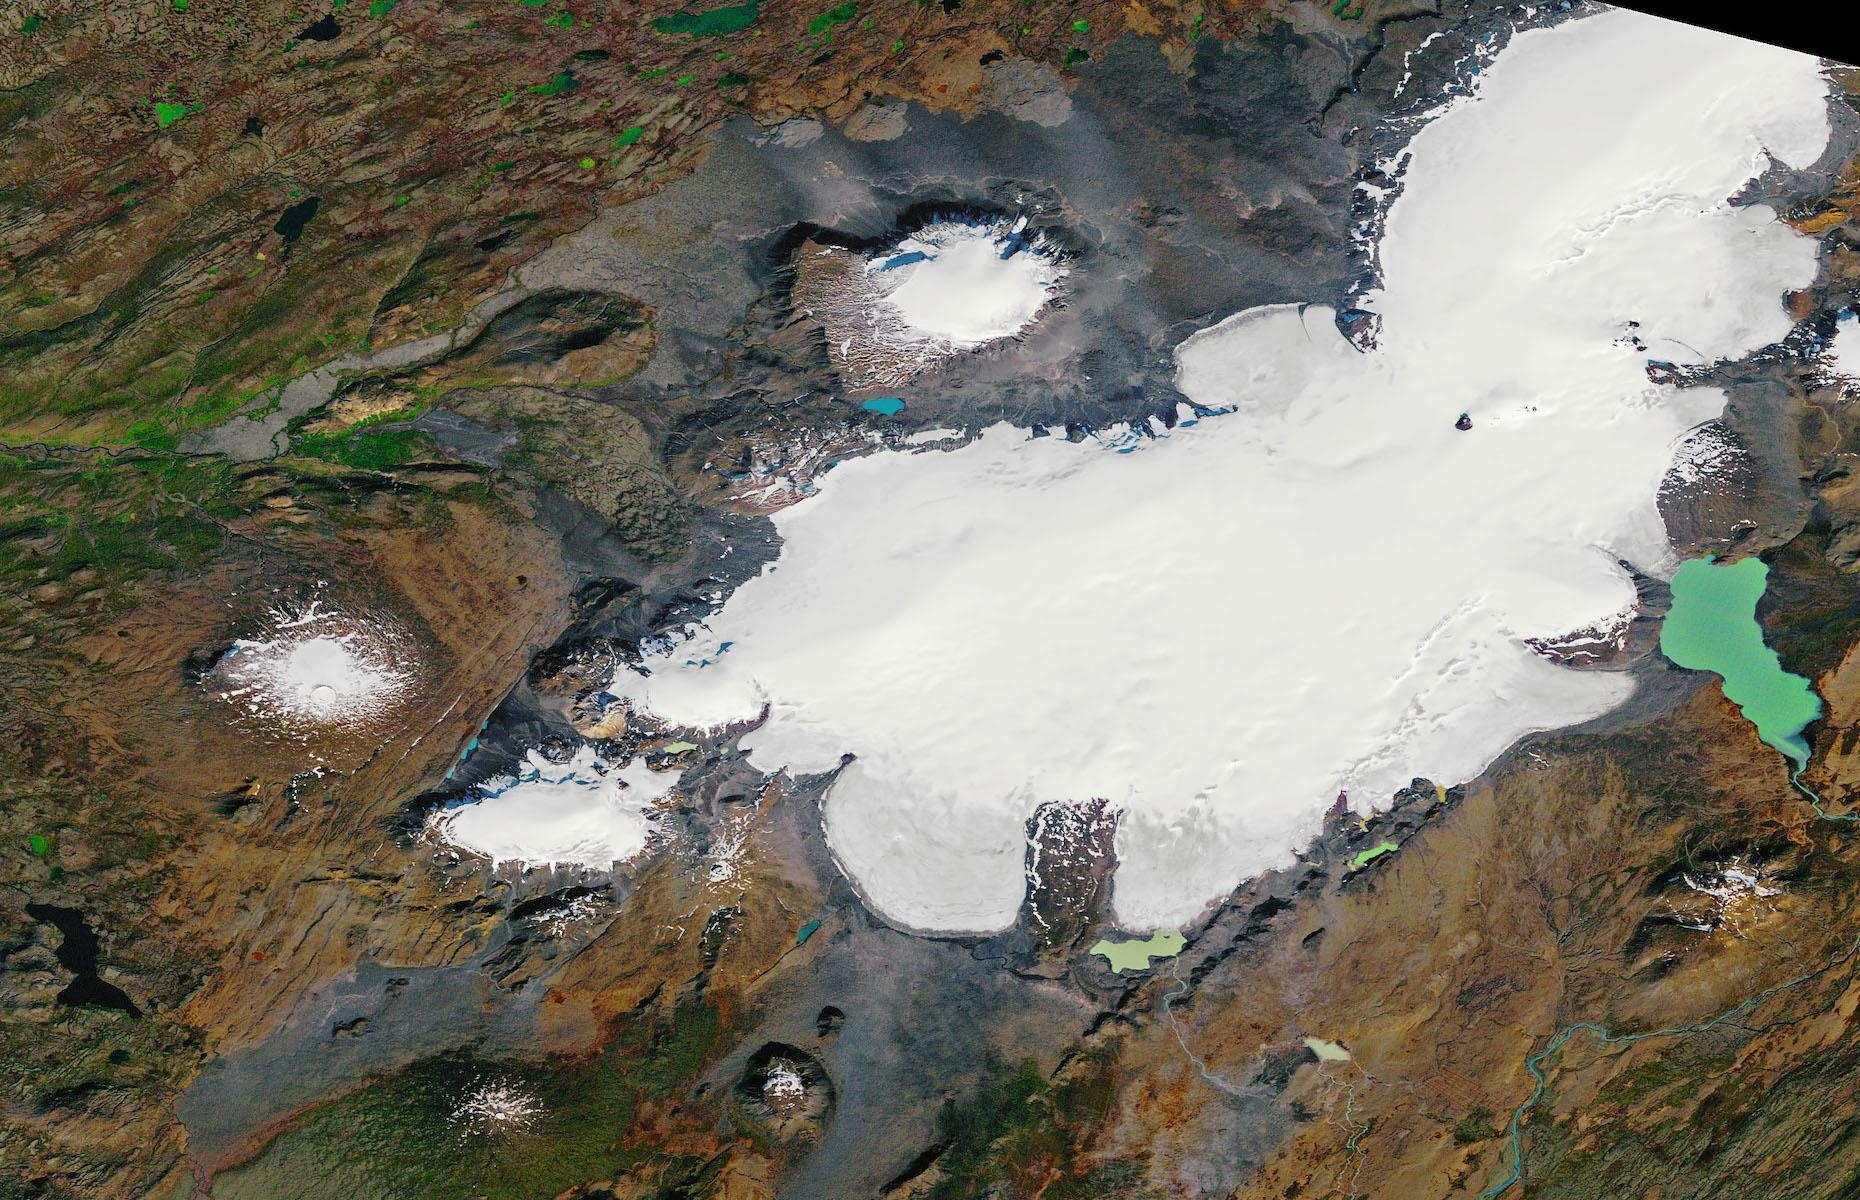 Slide 16 of 31: Renowned for its pristine and otherworldly icy landscapes, Iceland's topography is being dramatically affected by climate change. The Okjökull glacier (pictured by satellite here in 1986), on top of the Ok volcano in western Iceland, covered 6.2 square miles (16sq km) in 1890. By 2012, it measured just 0.2 square miles (0.7sq km), according to a report from the University of Iceland. The glacier was officially declared dead in 2014 – the first in the country to lose its status.